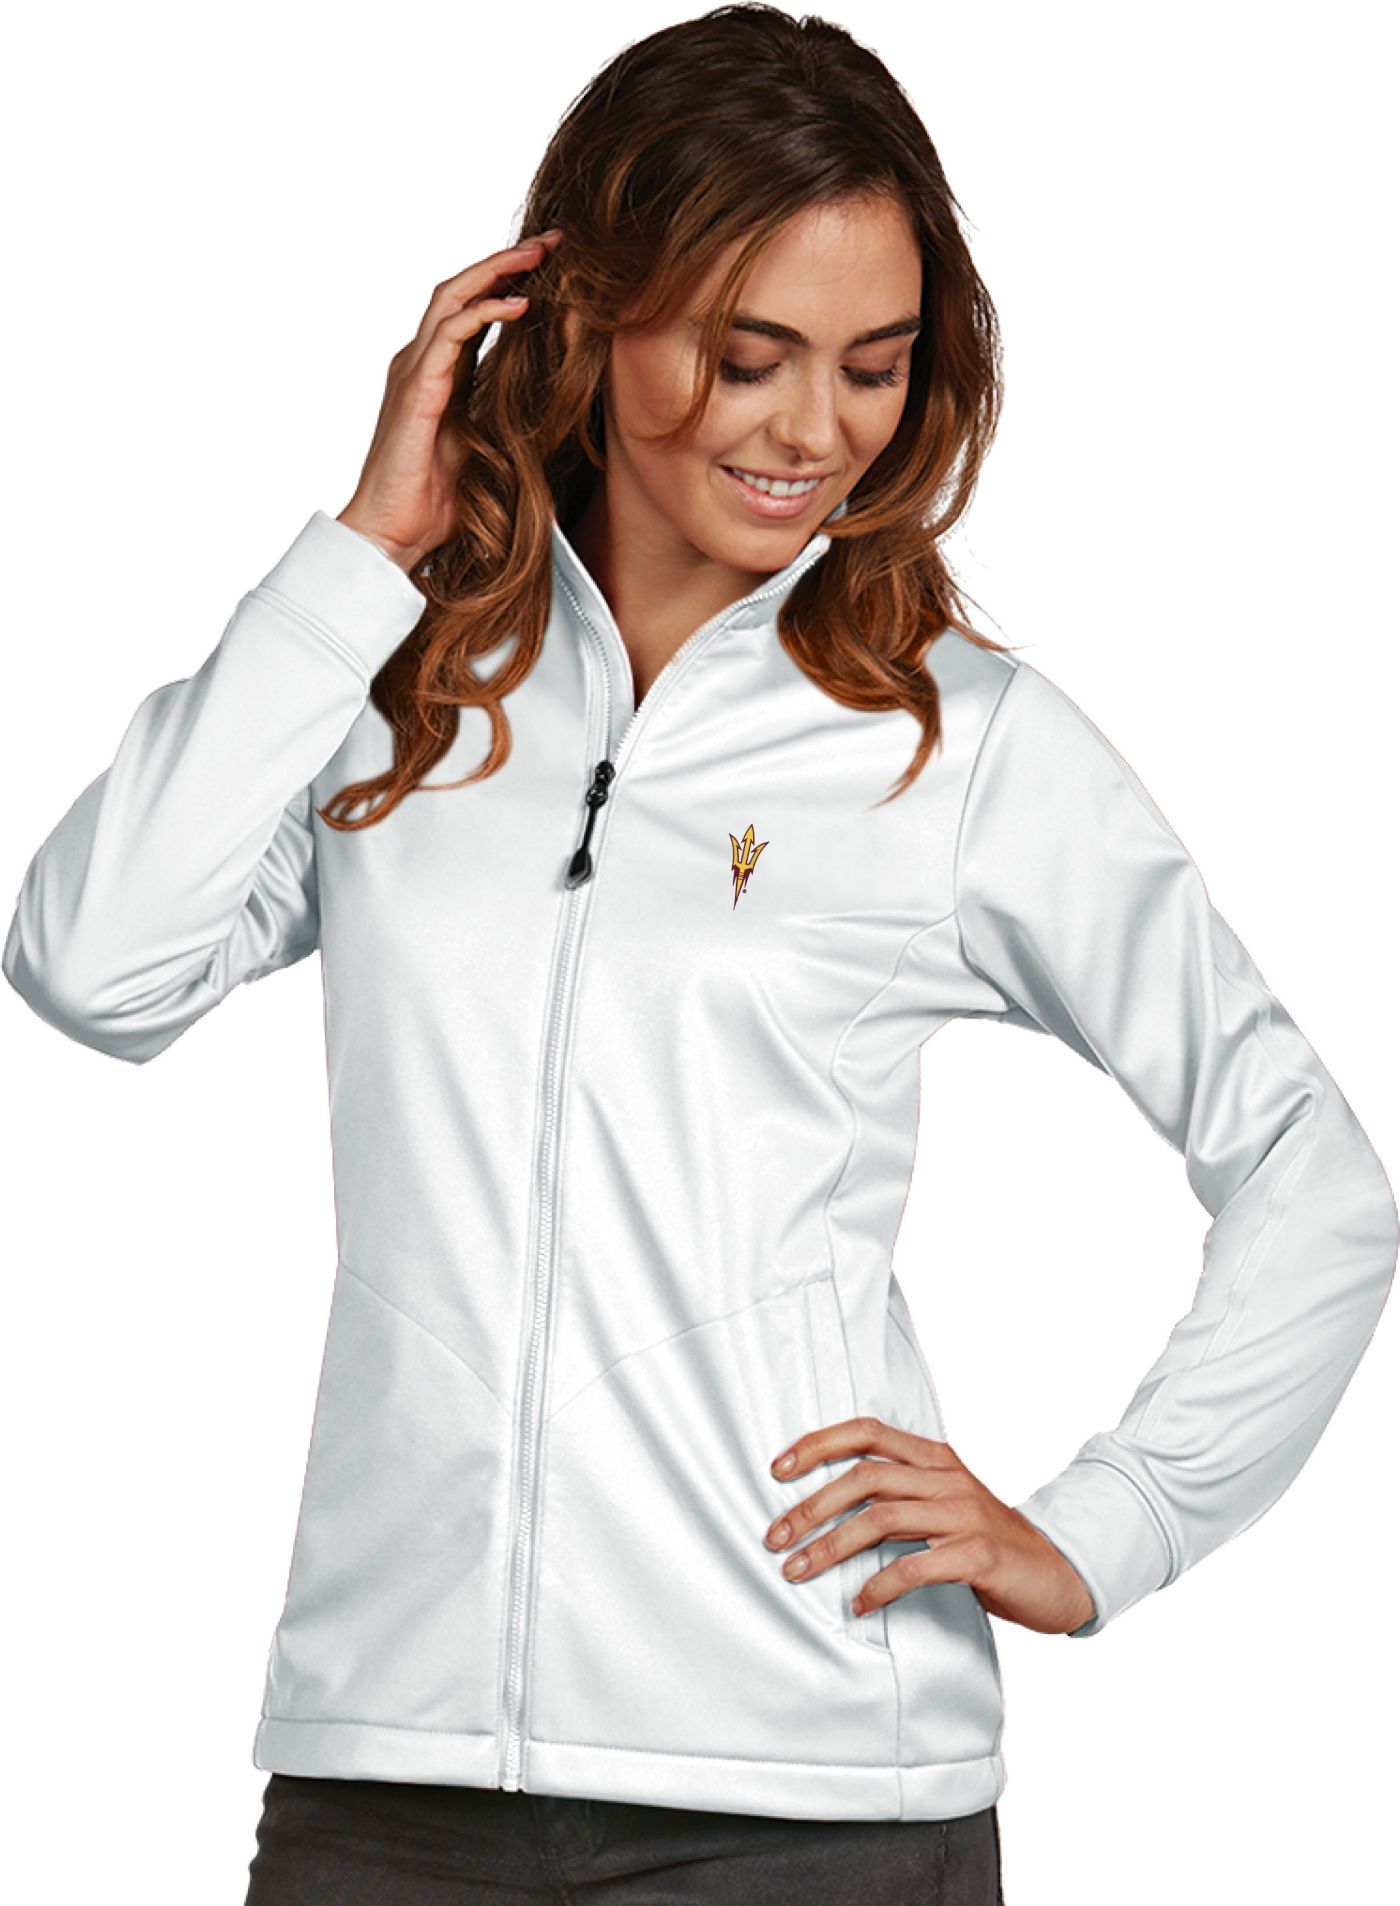 Antigua Women's Arizona State Sun Devils White Performance Golf Jacket